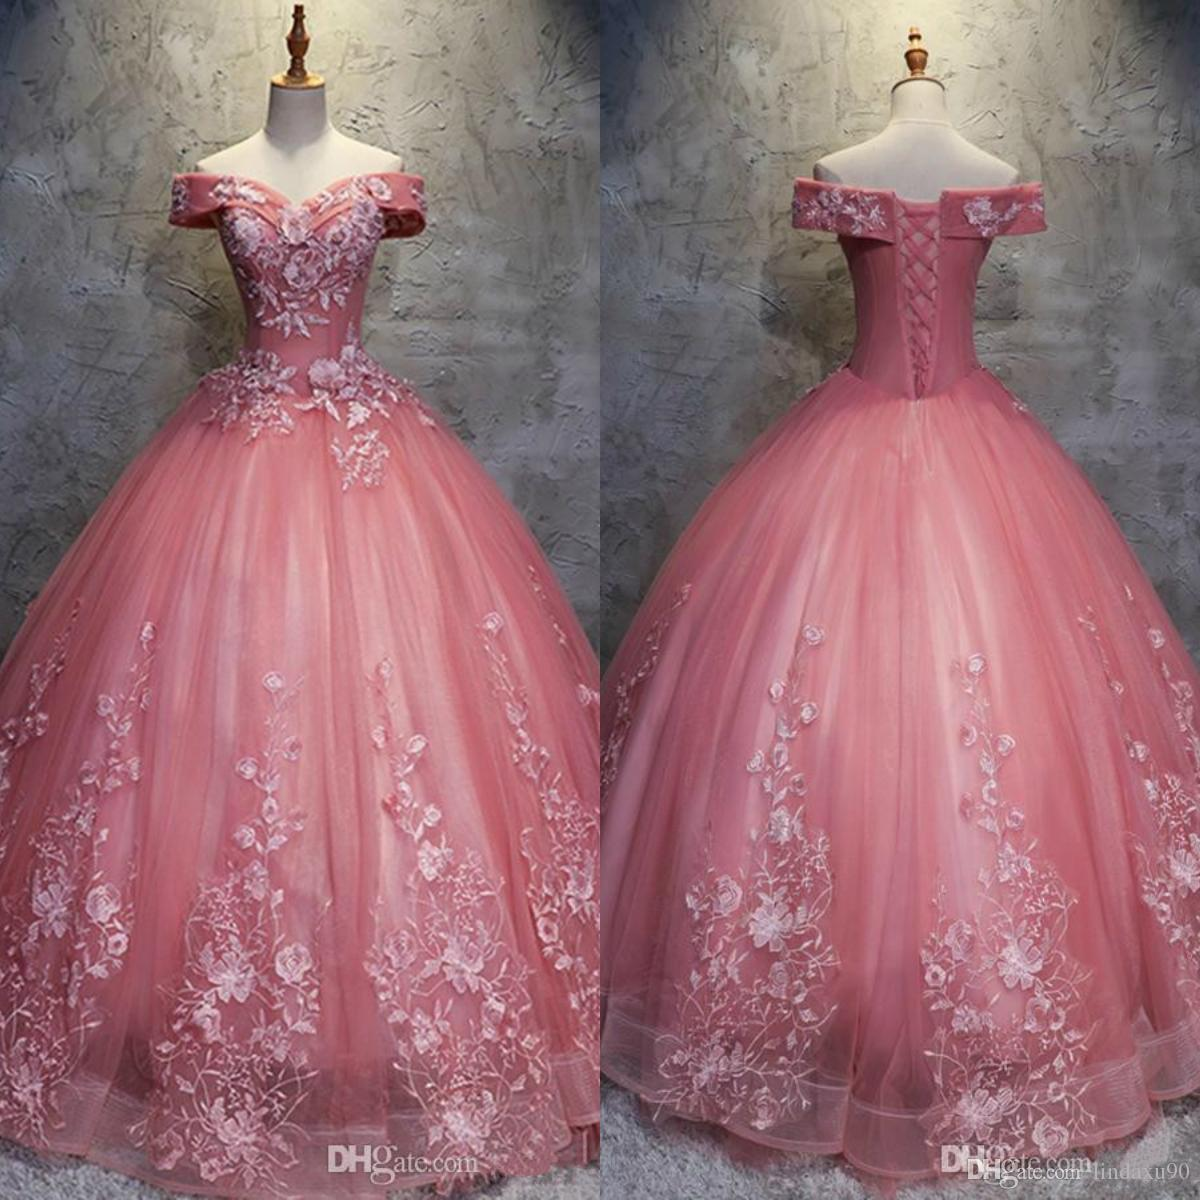 d7986e35703 Vintage 2019 Prom Dresses New Ball Gown Off The Shoulder Watermelon Tulle  Lace Appliqued Evening Gowns Arabic Formal Dress Vestidos Short Purple Prom  ...